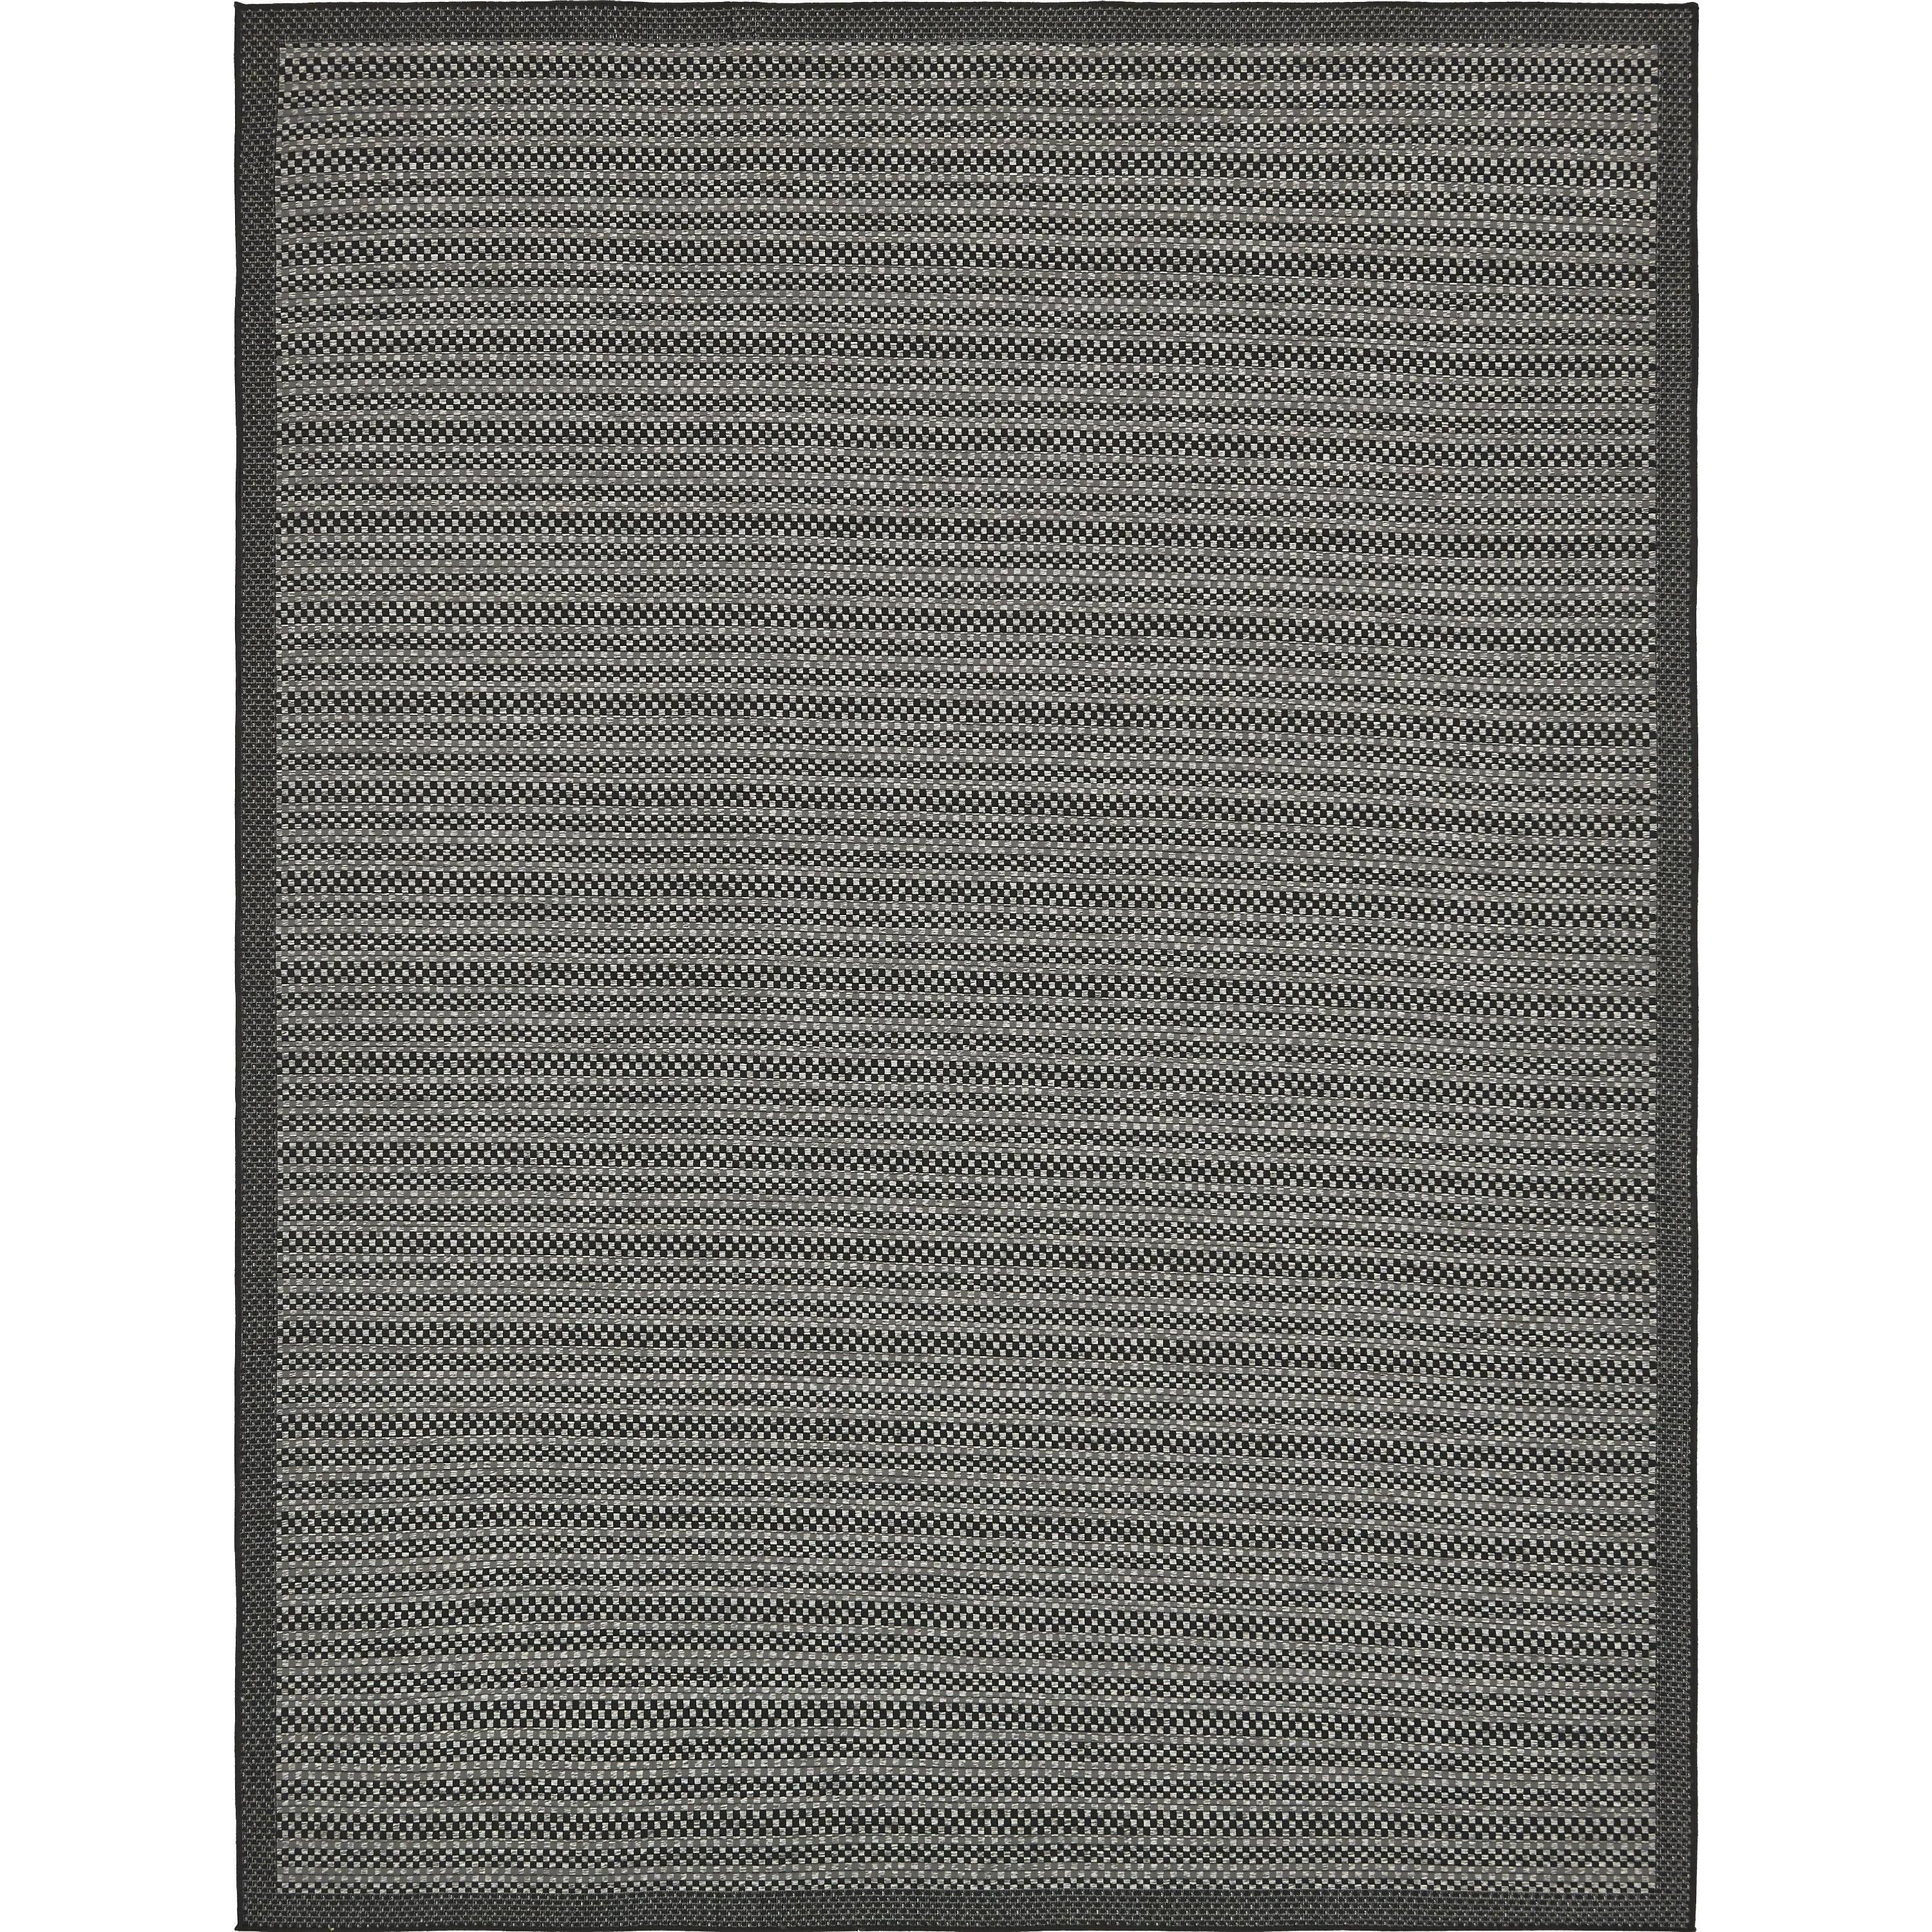 Unique Outdoor Geometric Grey Area Rug 9 X 12 Grey 12 Feet X